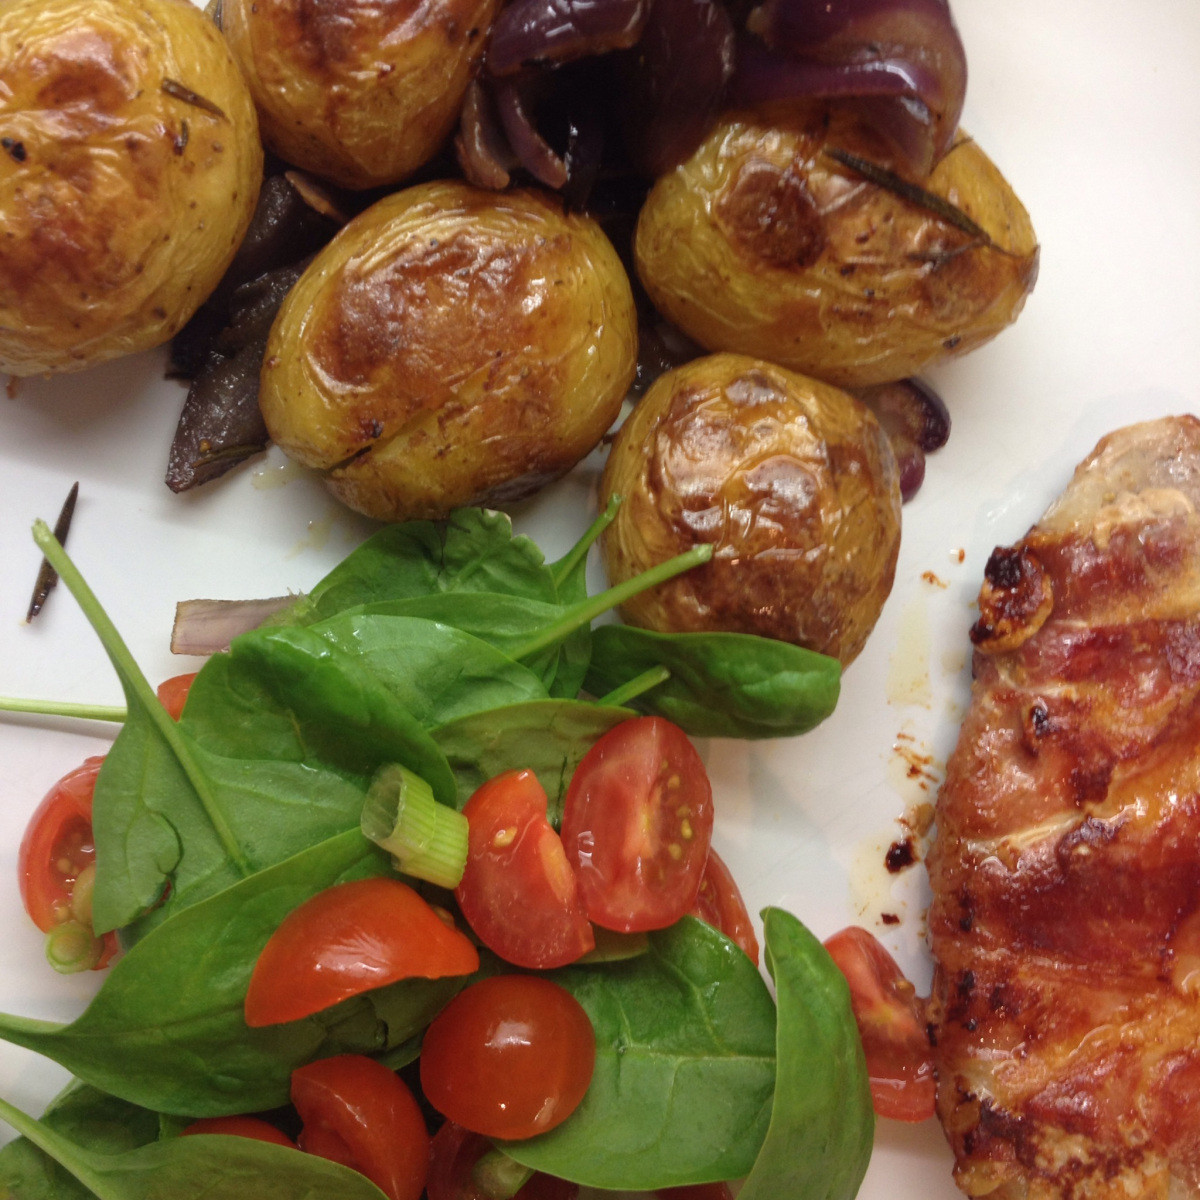 Roasted New Potatoes  Pork and mozzarella parcels ac panied by roasted new